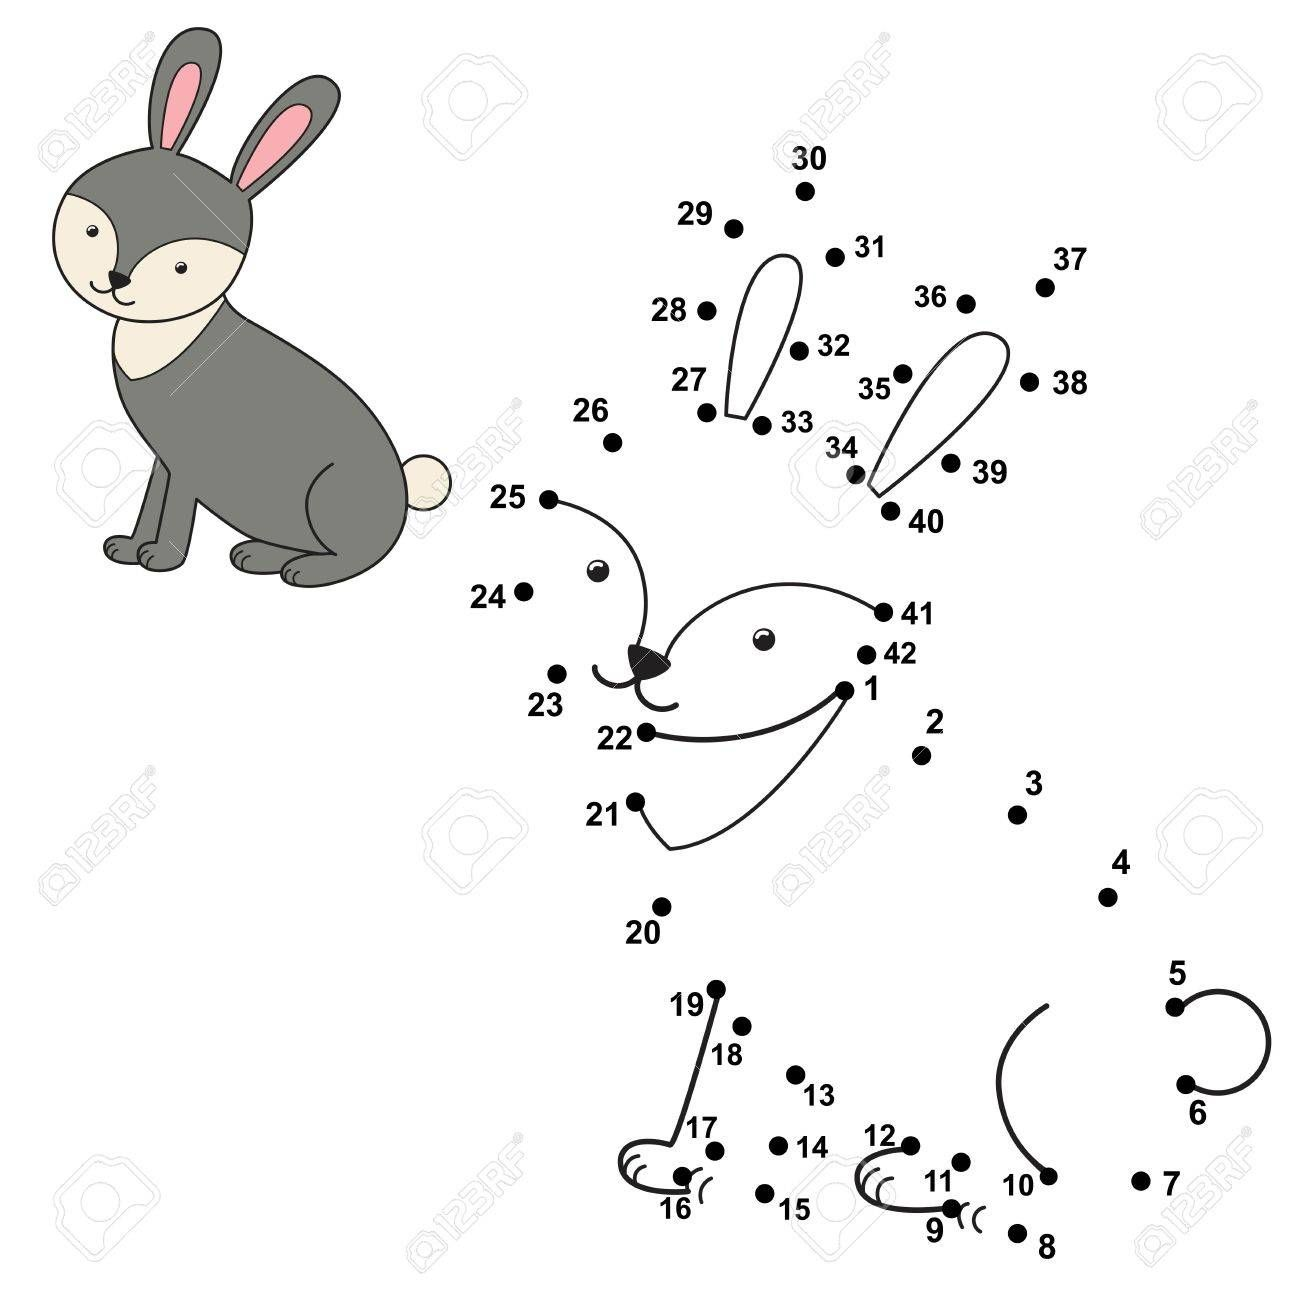 Connect The Dots To Draw The Cute Rabbit And